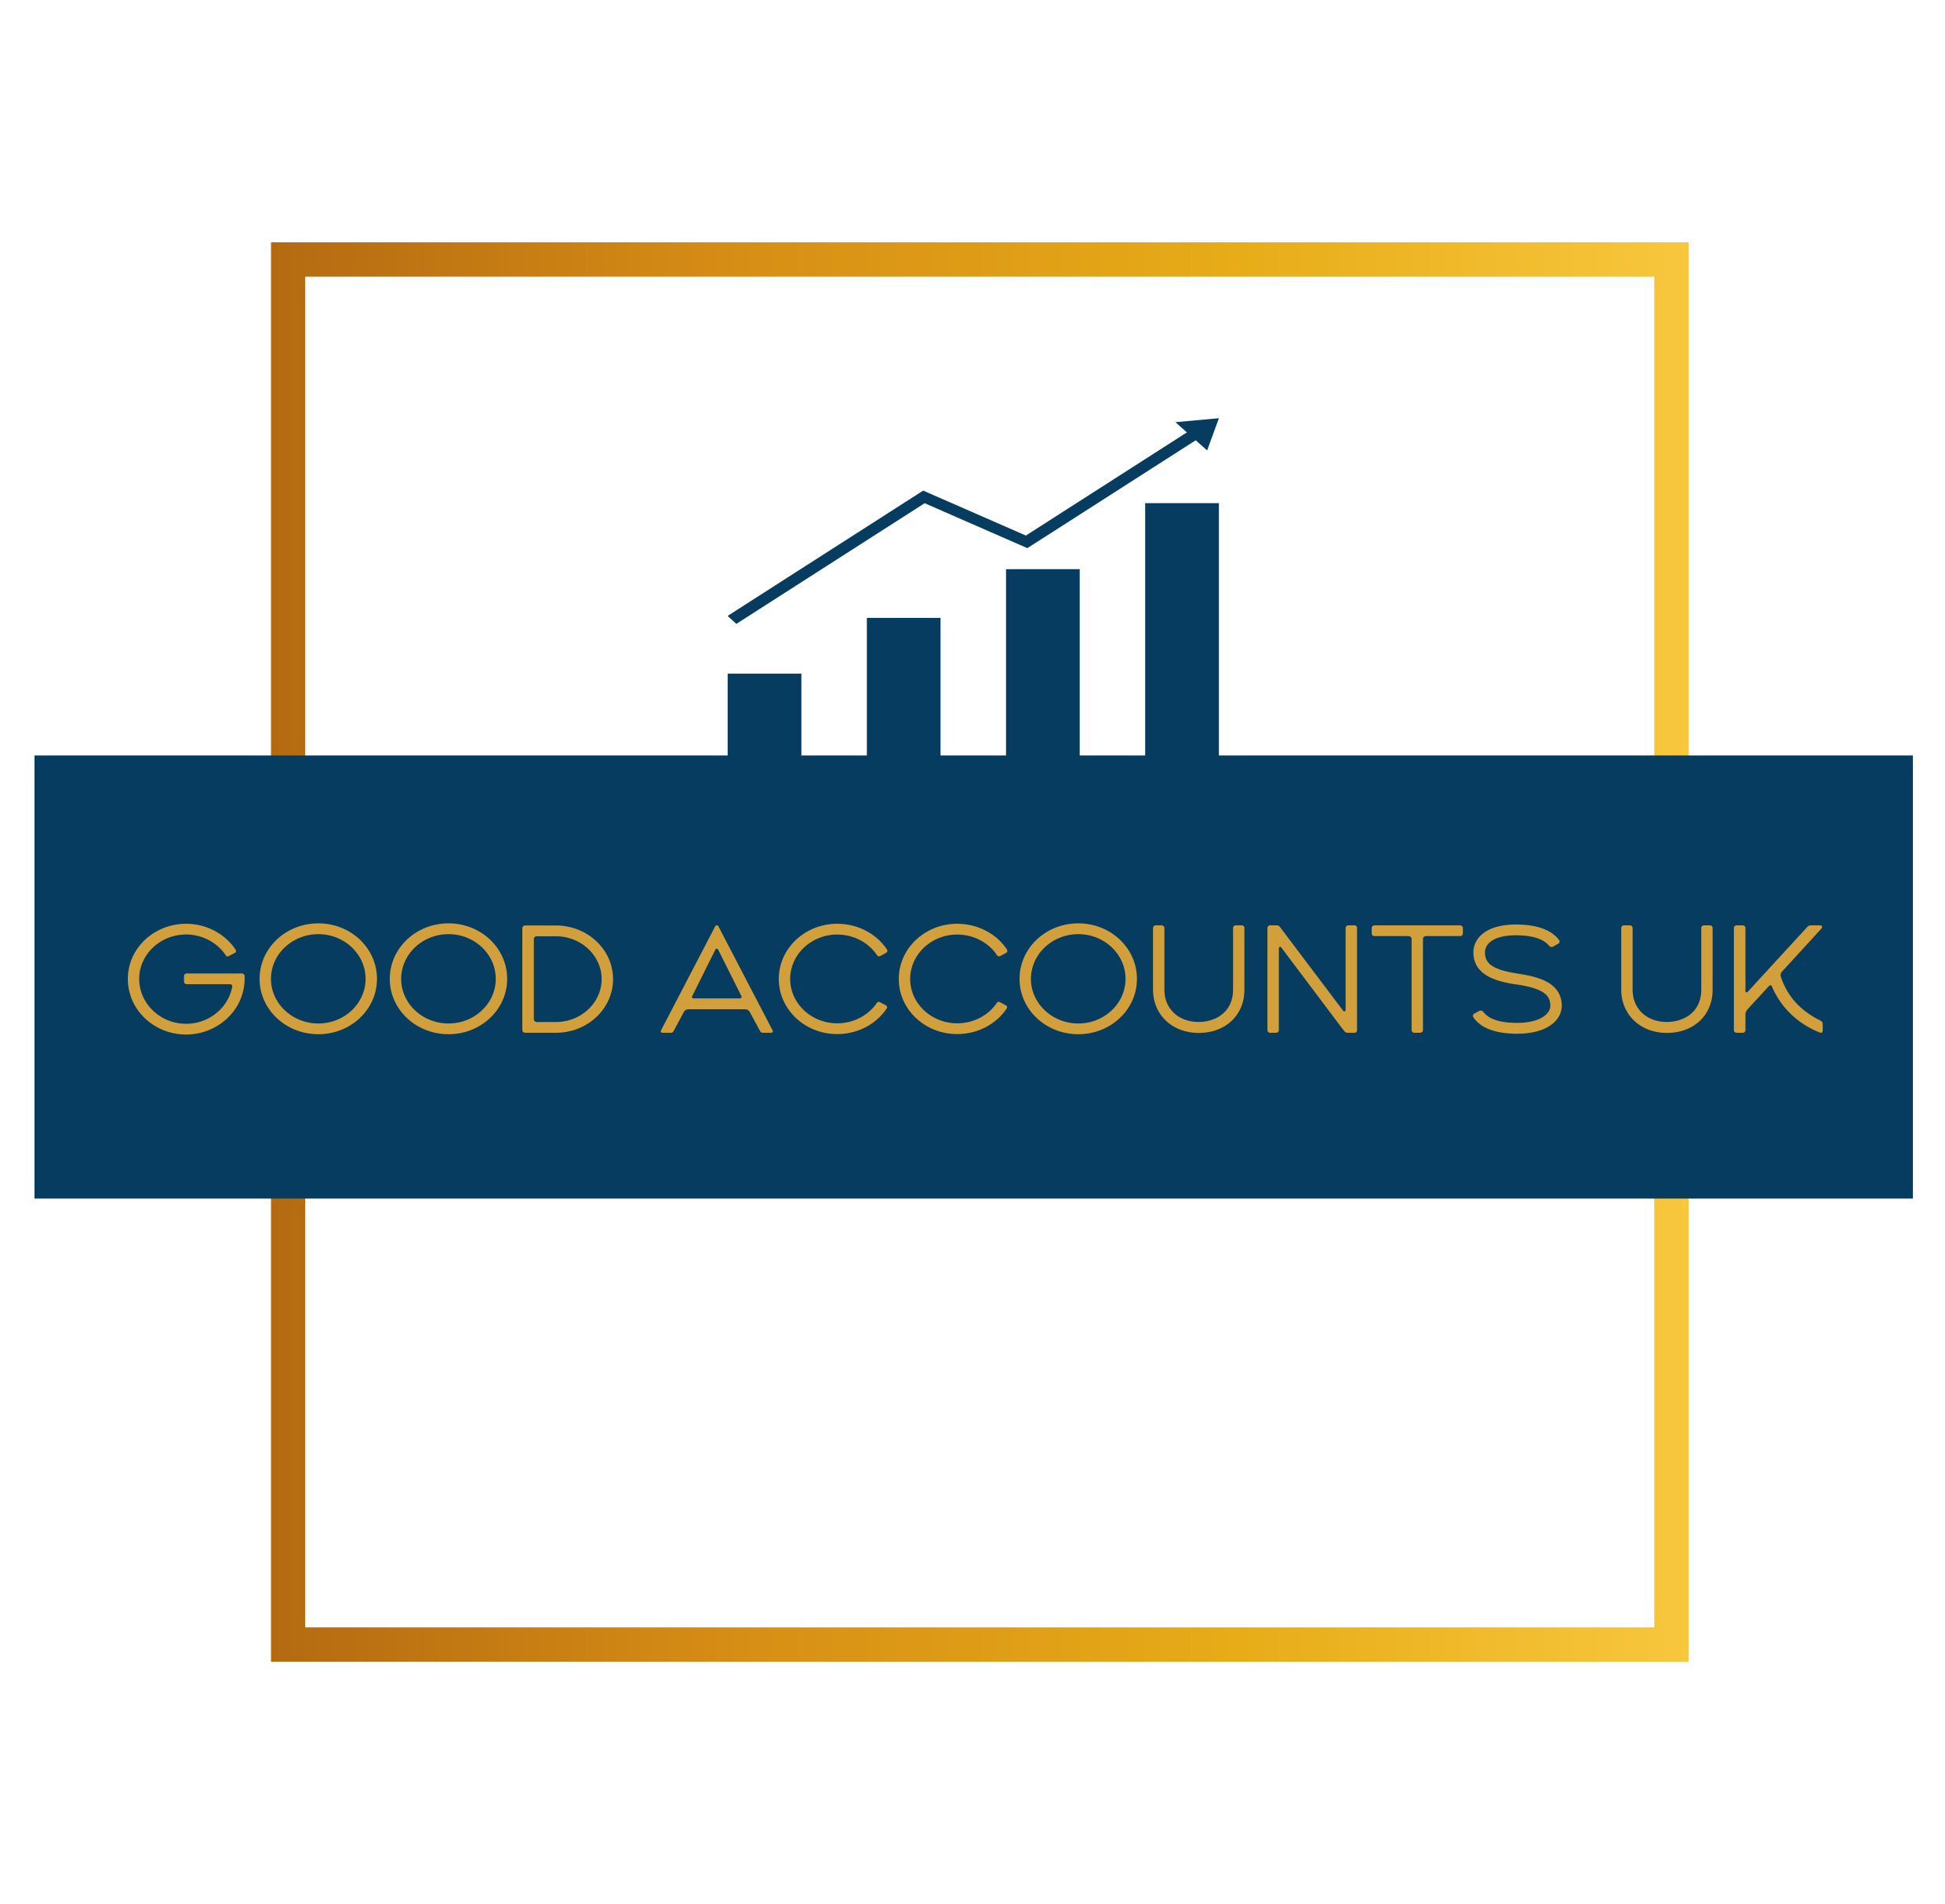 accountant, bookkeeping, tax accountant, accounting, accounting services, bookkeeping services, quickbooks accountant, income tax, payroll, tax preparation, accounting firm, london, united kingdom